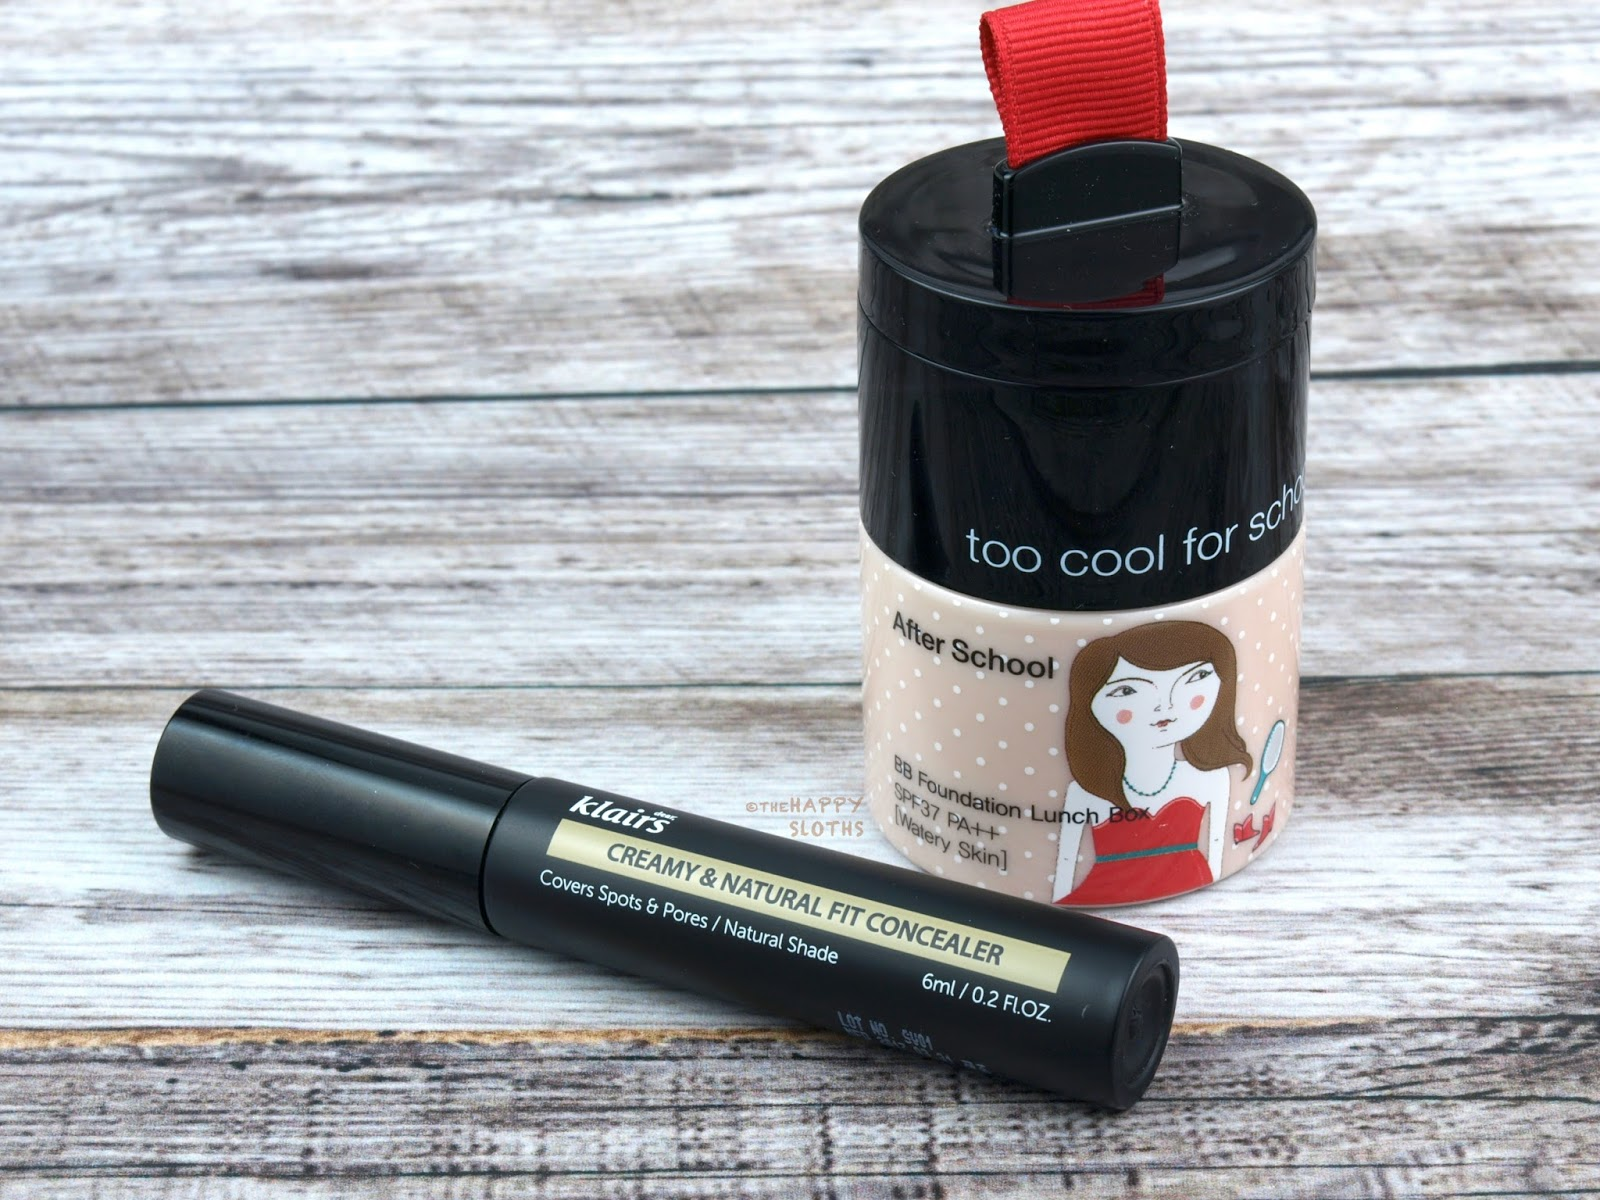 Too Cool for School After School BB Foundation Lunch Box | Dear, Klairs Creamy & Natural Fit Concealer